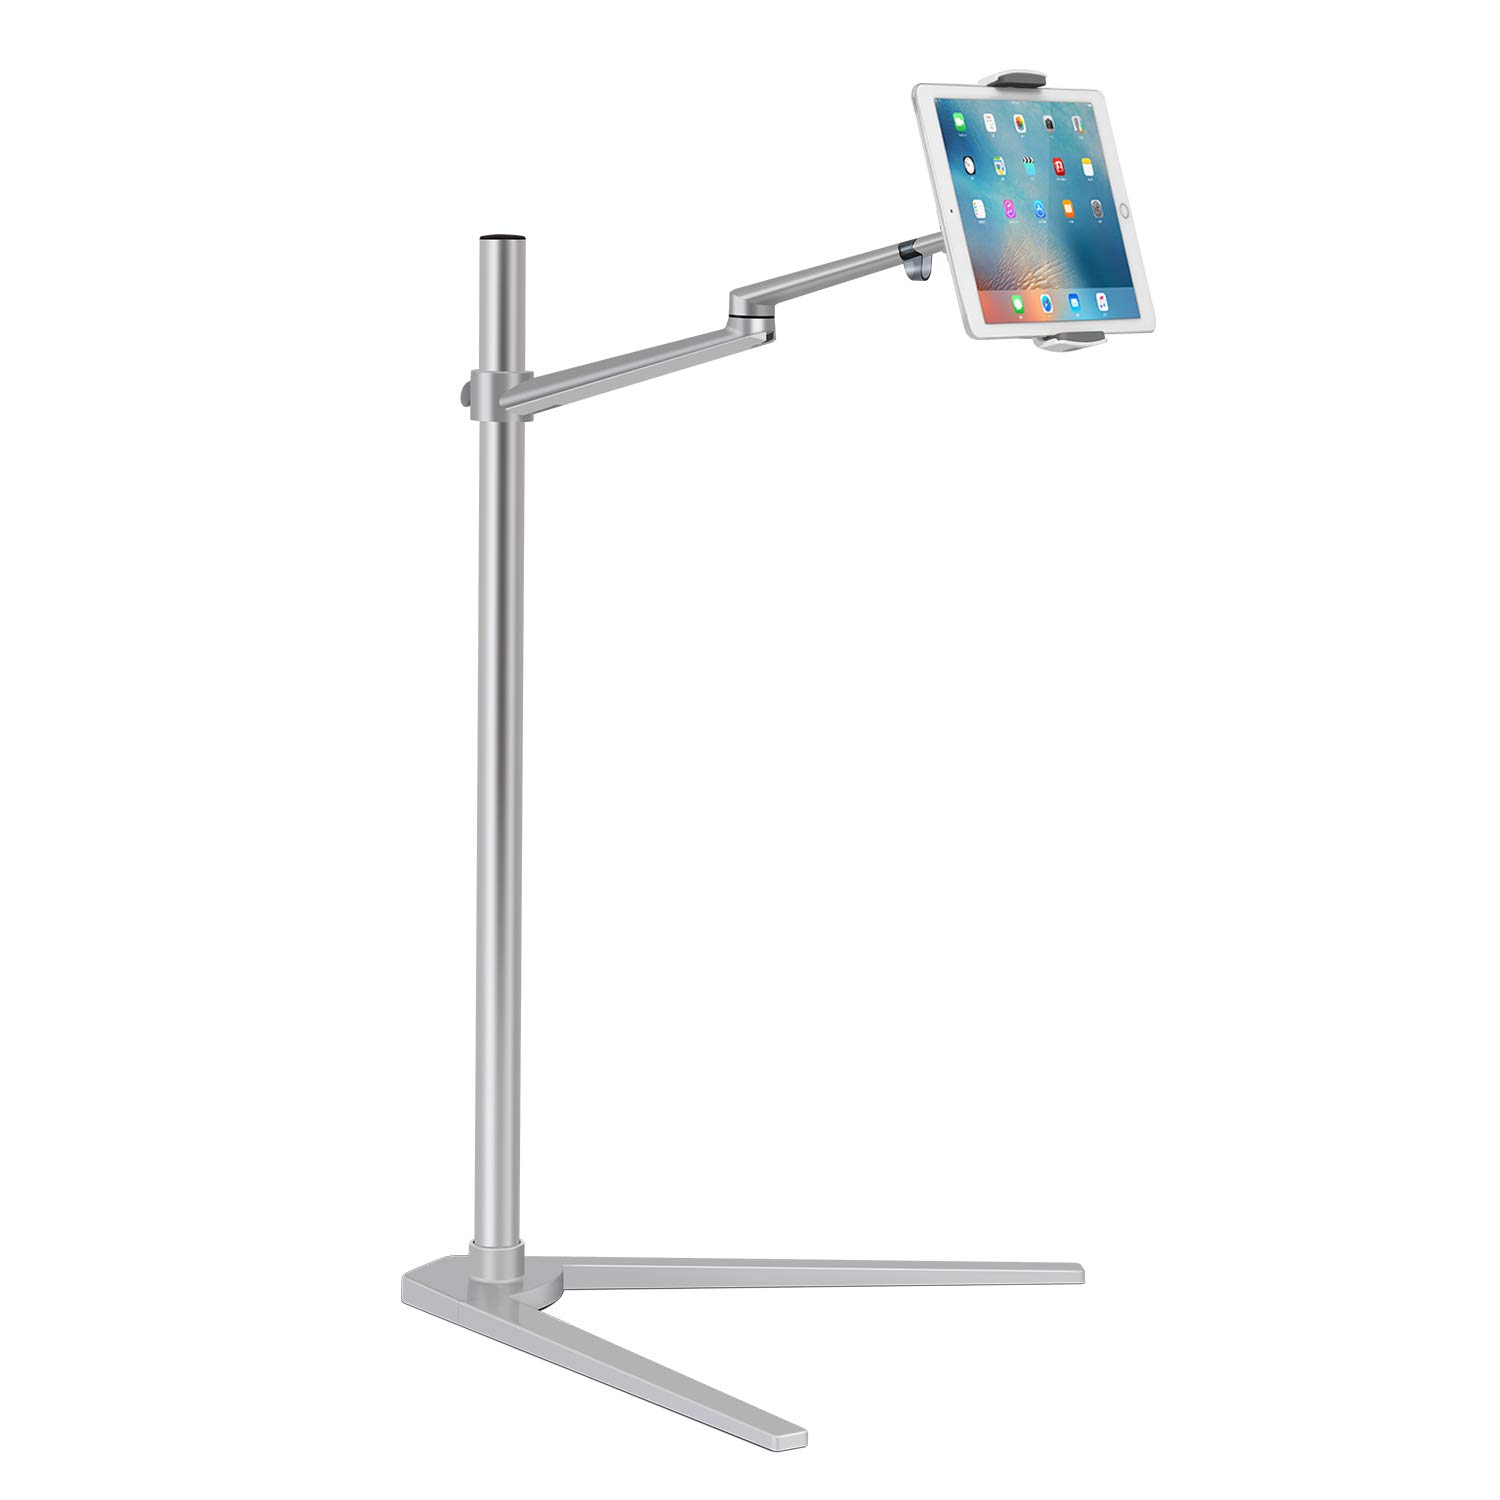 Viozon Tablet Floor Stand, Holder for iPad,Applicable to3.5~6inch Smart Phone and 7~13 inch Tablet Such as iPad, iPhone X, iPad Pro,iPad Mini, iPad Air 1-2 / iPad 2-4 (Silver) by Viozon